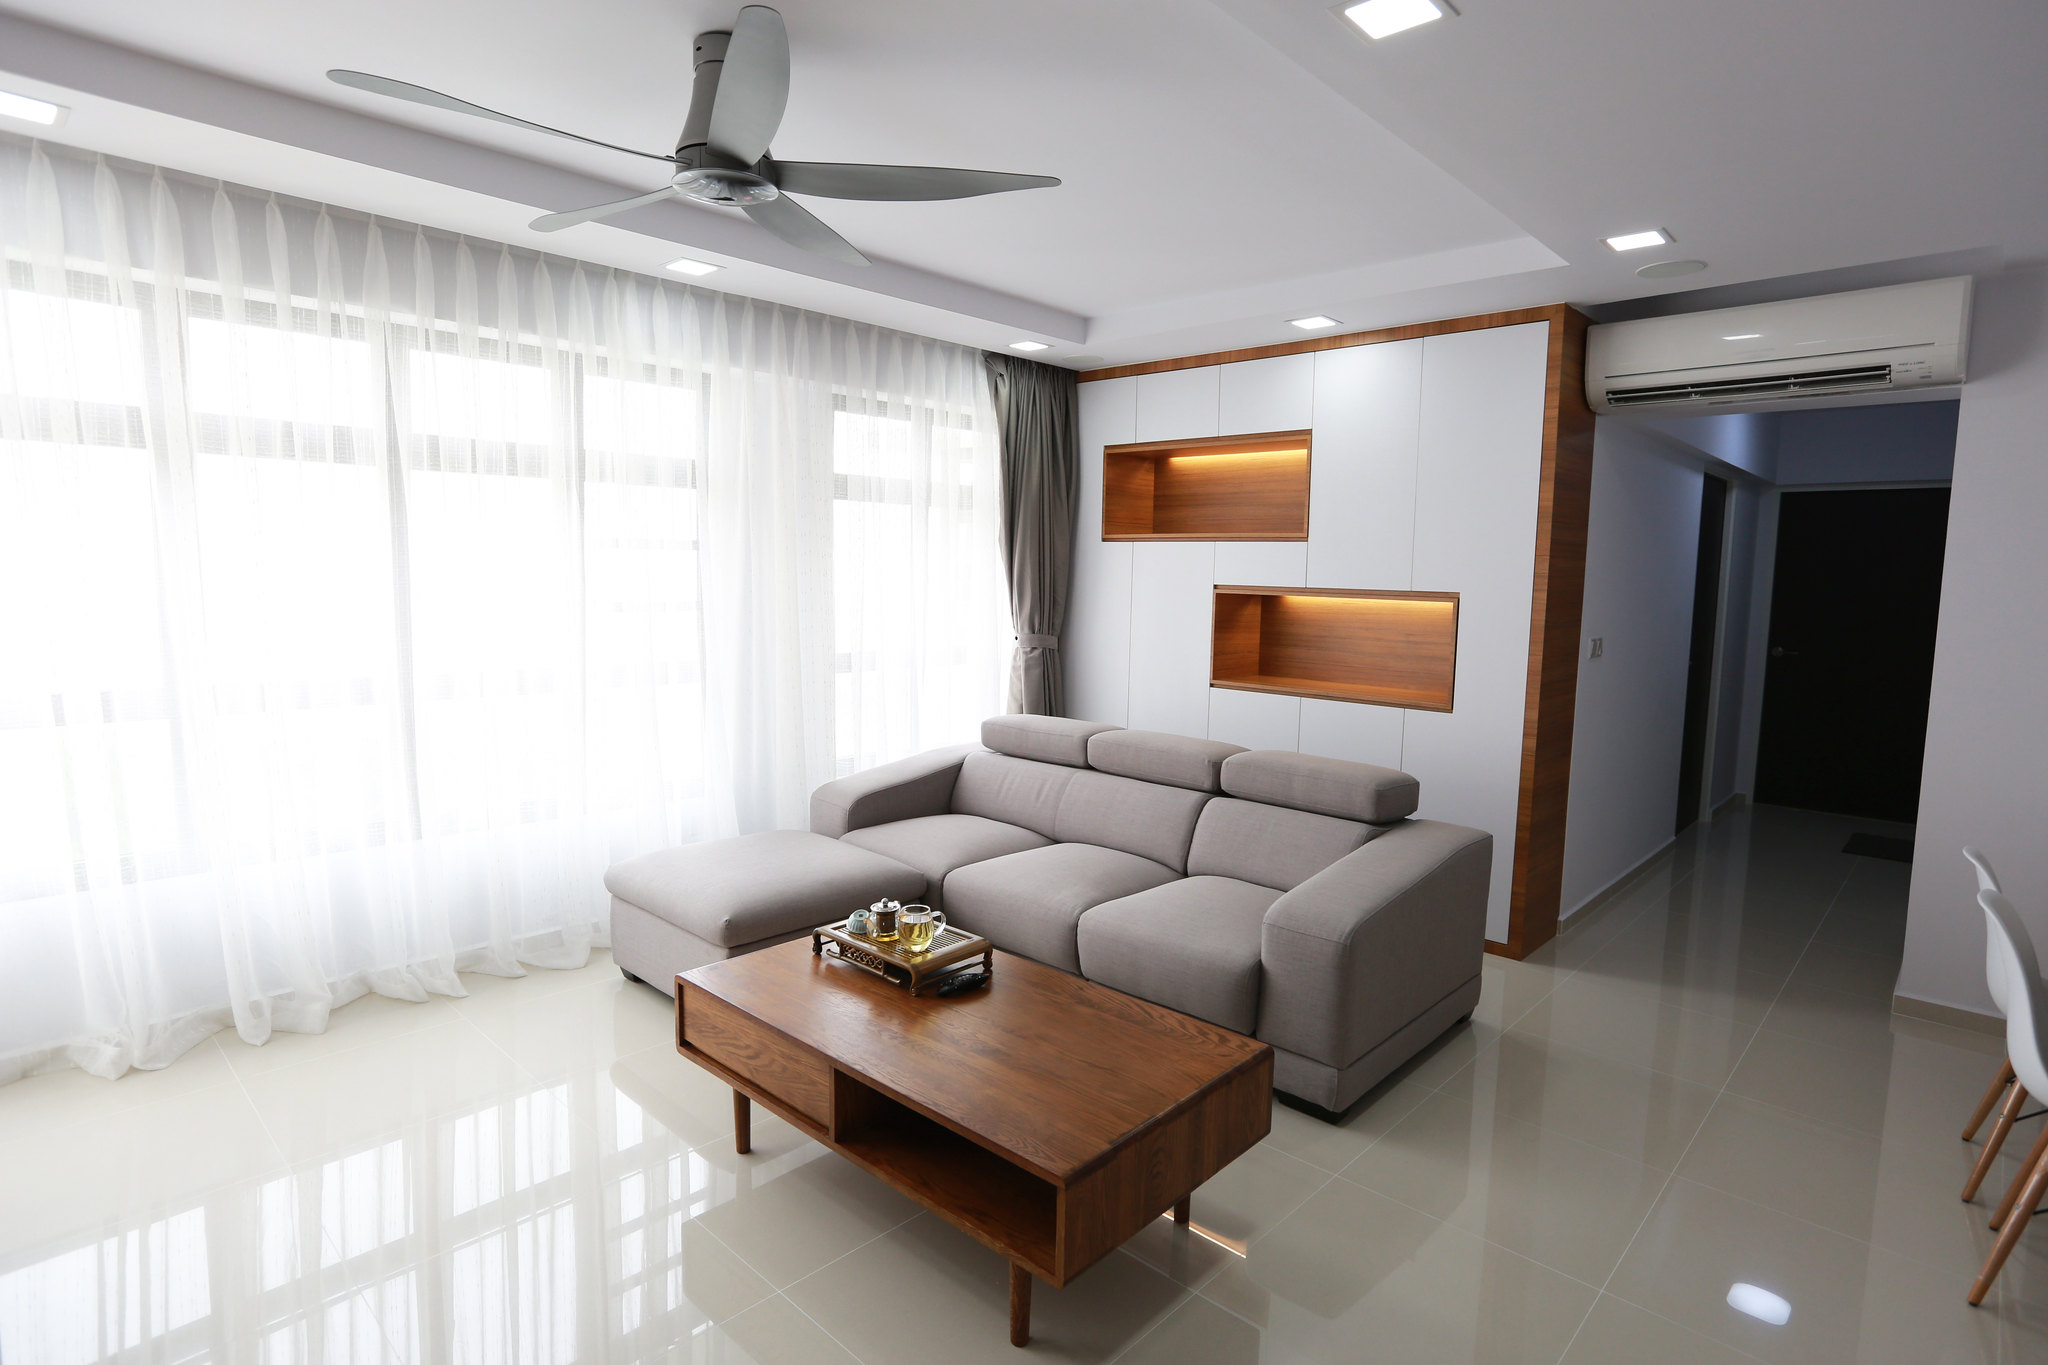 freb 39 s 5 room renovation journey reno t blog chat hdb resale renovation interior design. Black Bedroom Furniture Sets. Home Design Ideas